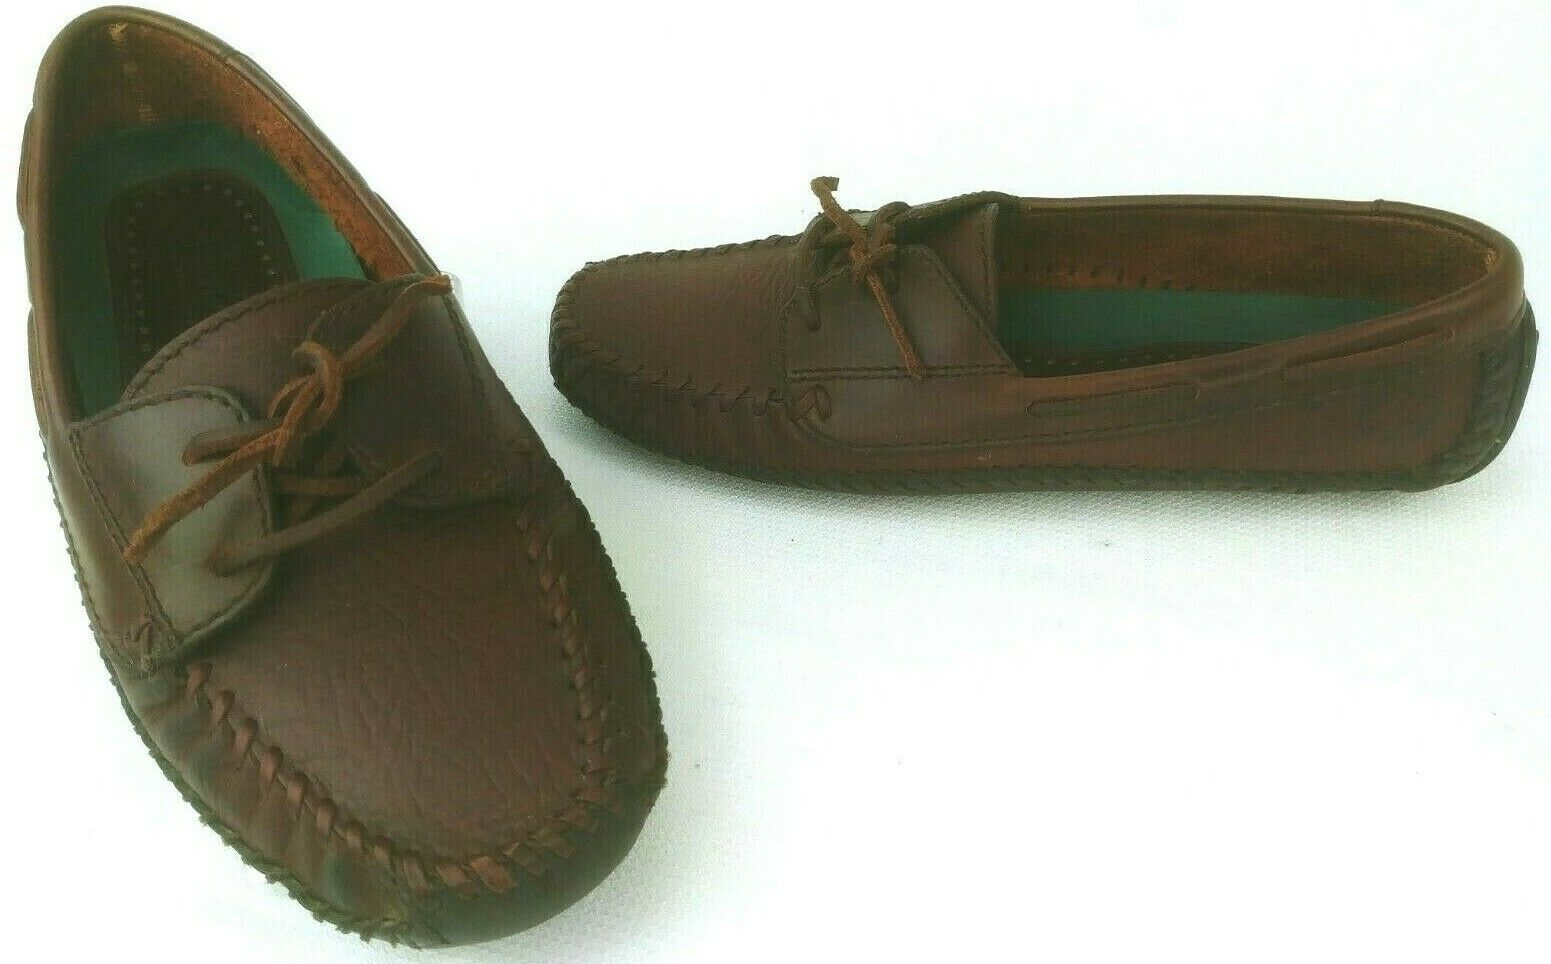 H.S. Trask Brown Leather Driving Loafers shoes Moc Toes Mens Size 8 1 2 D